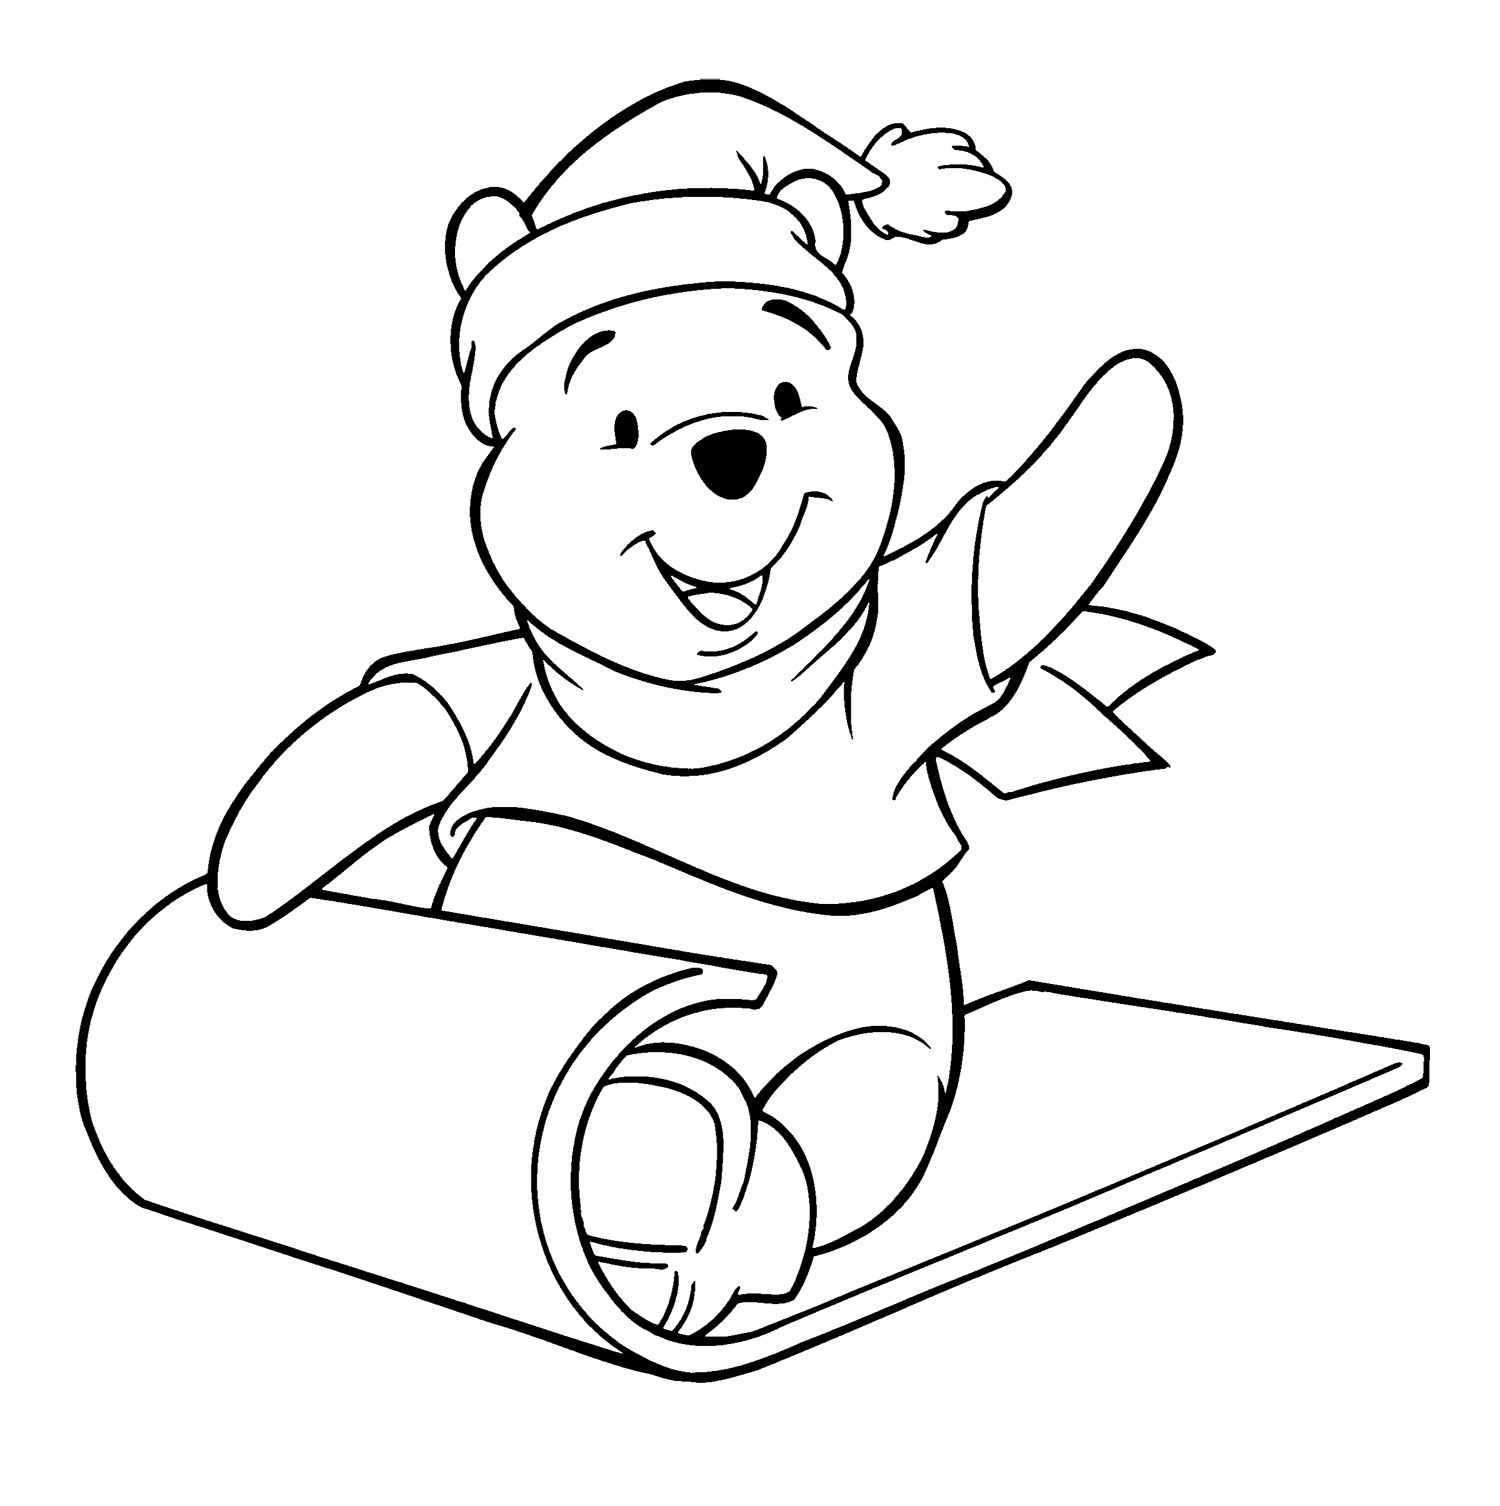 Baby winnie the pooh christmas coloring pages - Images About Winnie The Pooh Coloring Page On Pinterest Toys Piglets And Winnie The Pooh